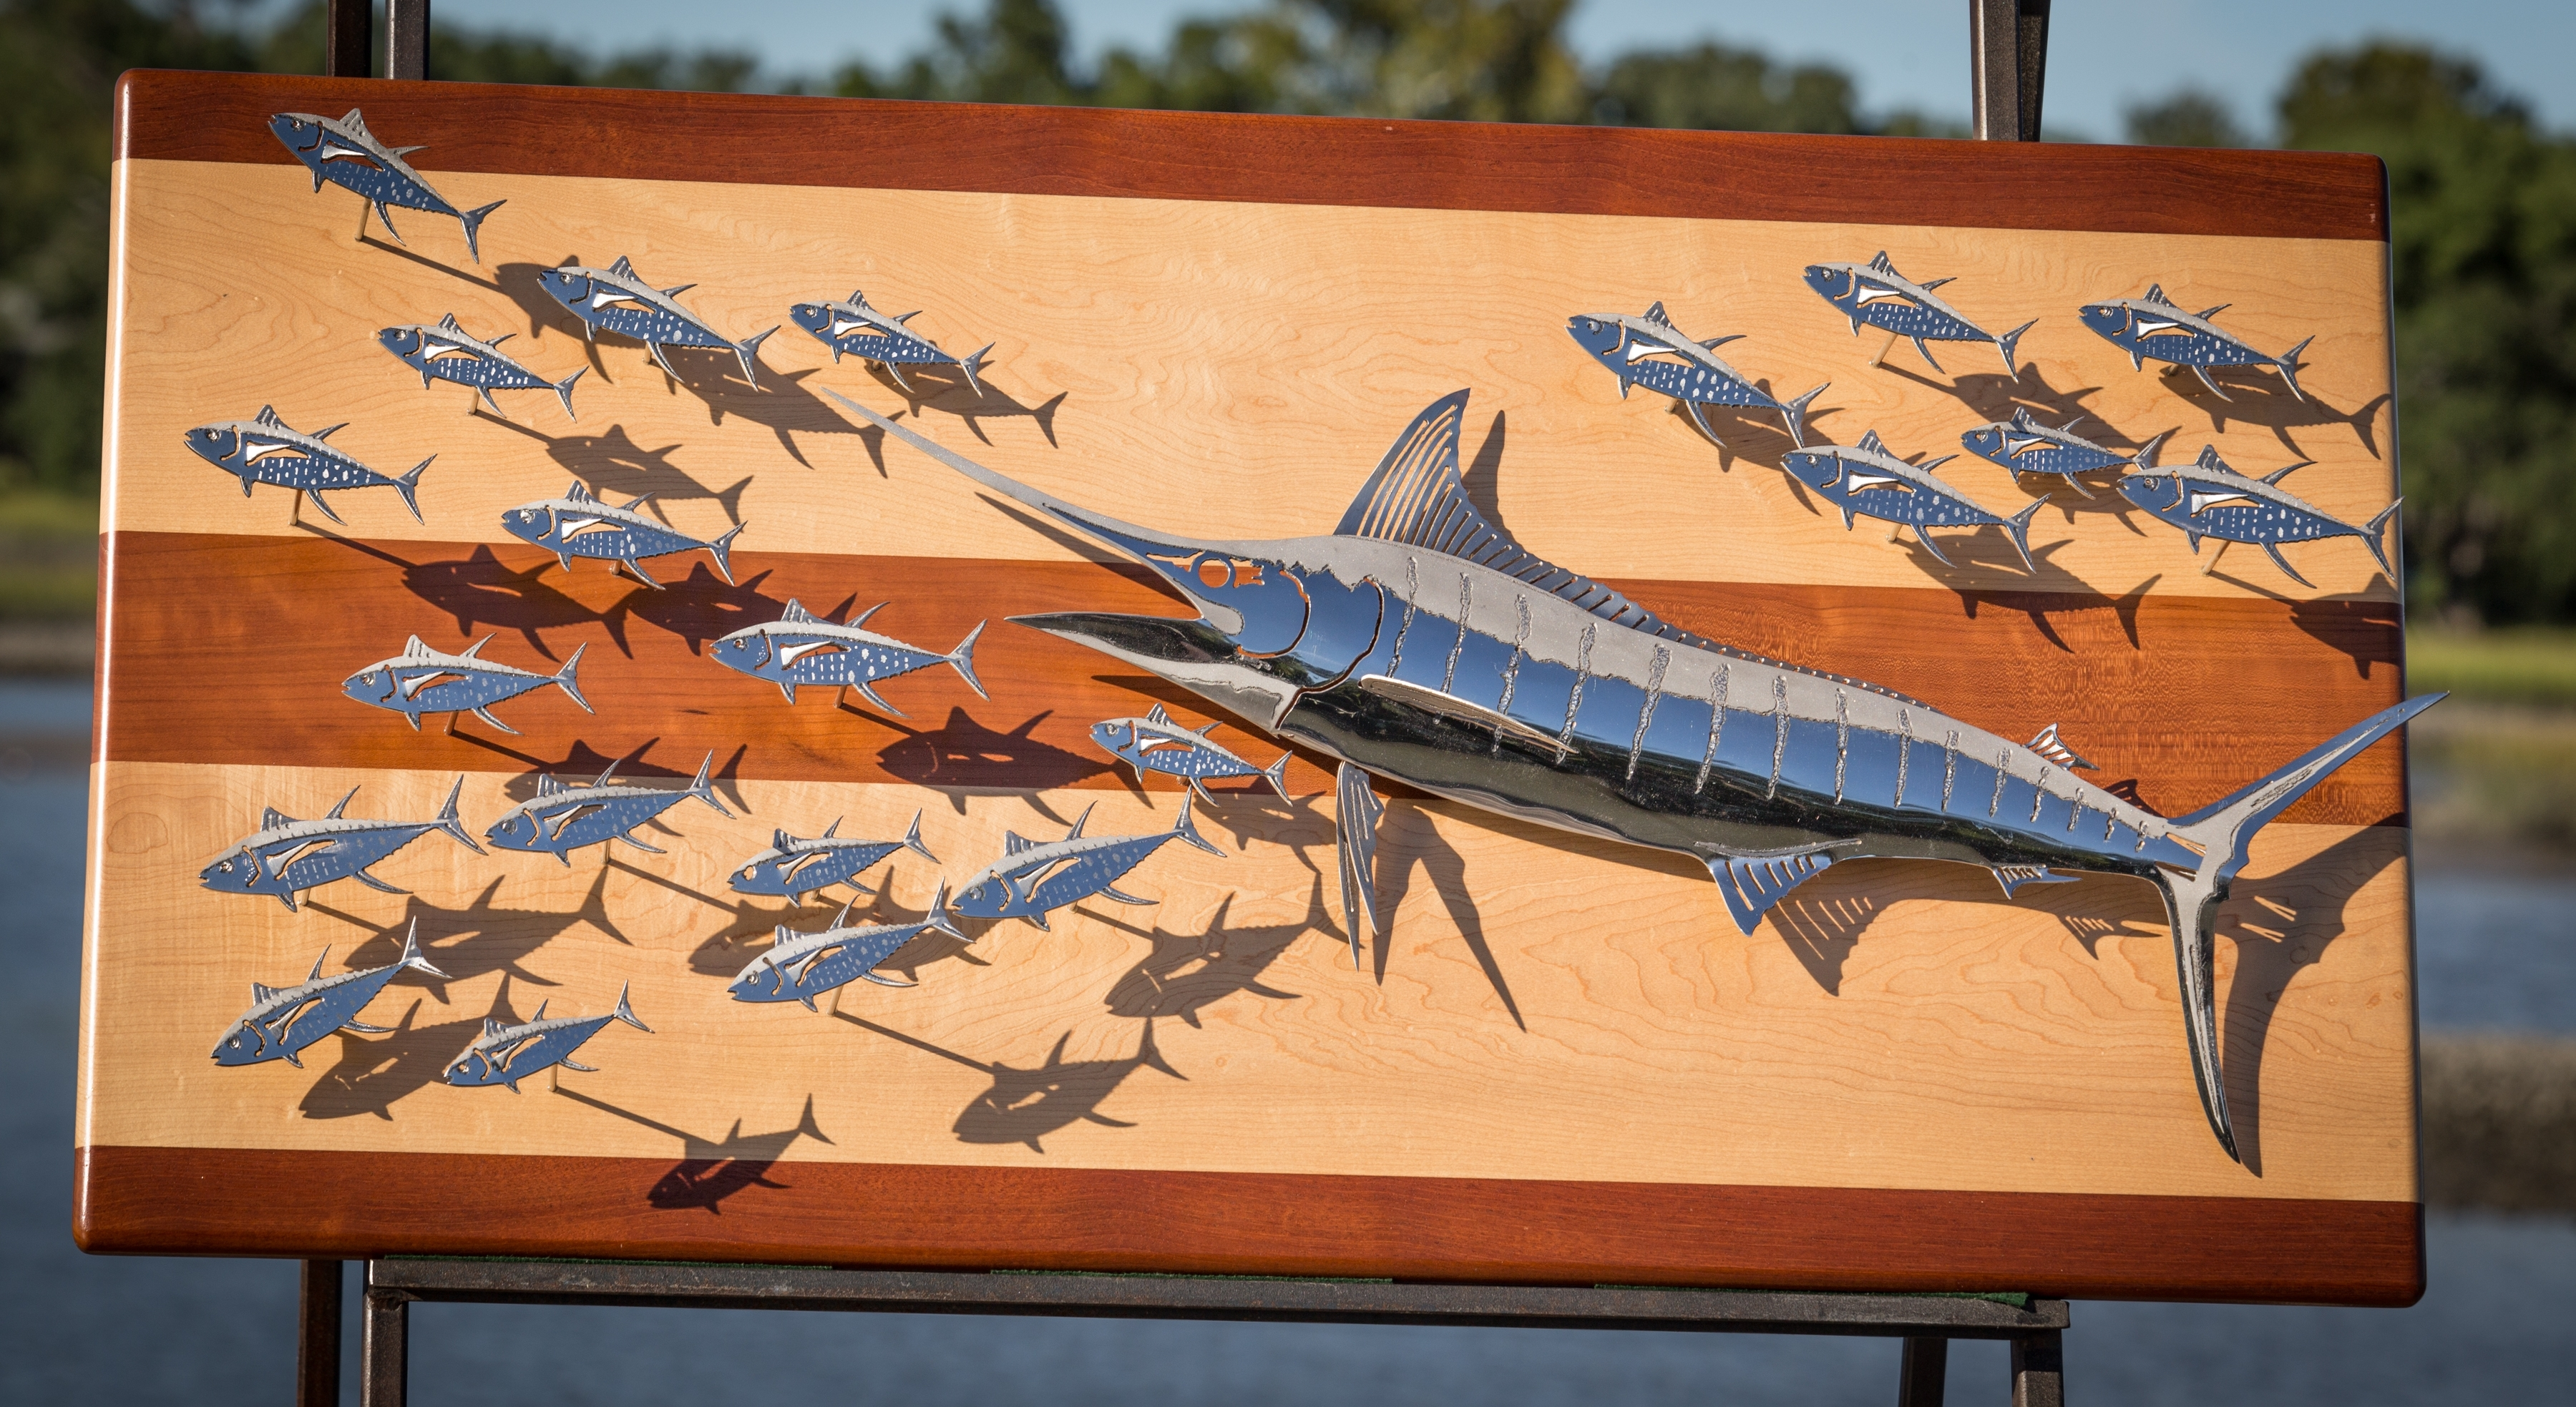 Custom Art And Sculptures | R Mended Metals Throughout Best And Newest Abstract Metal Fish Wall Art (View 12 of 20)